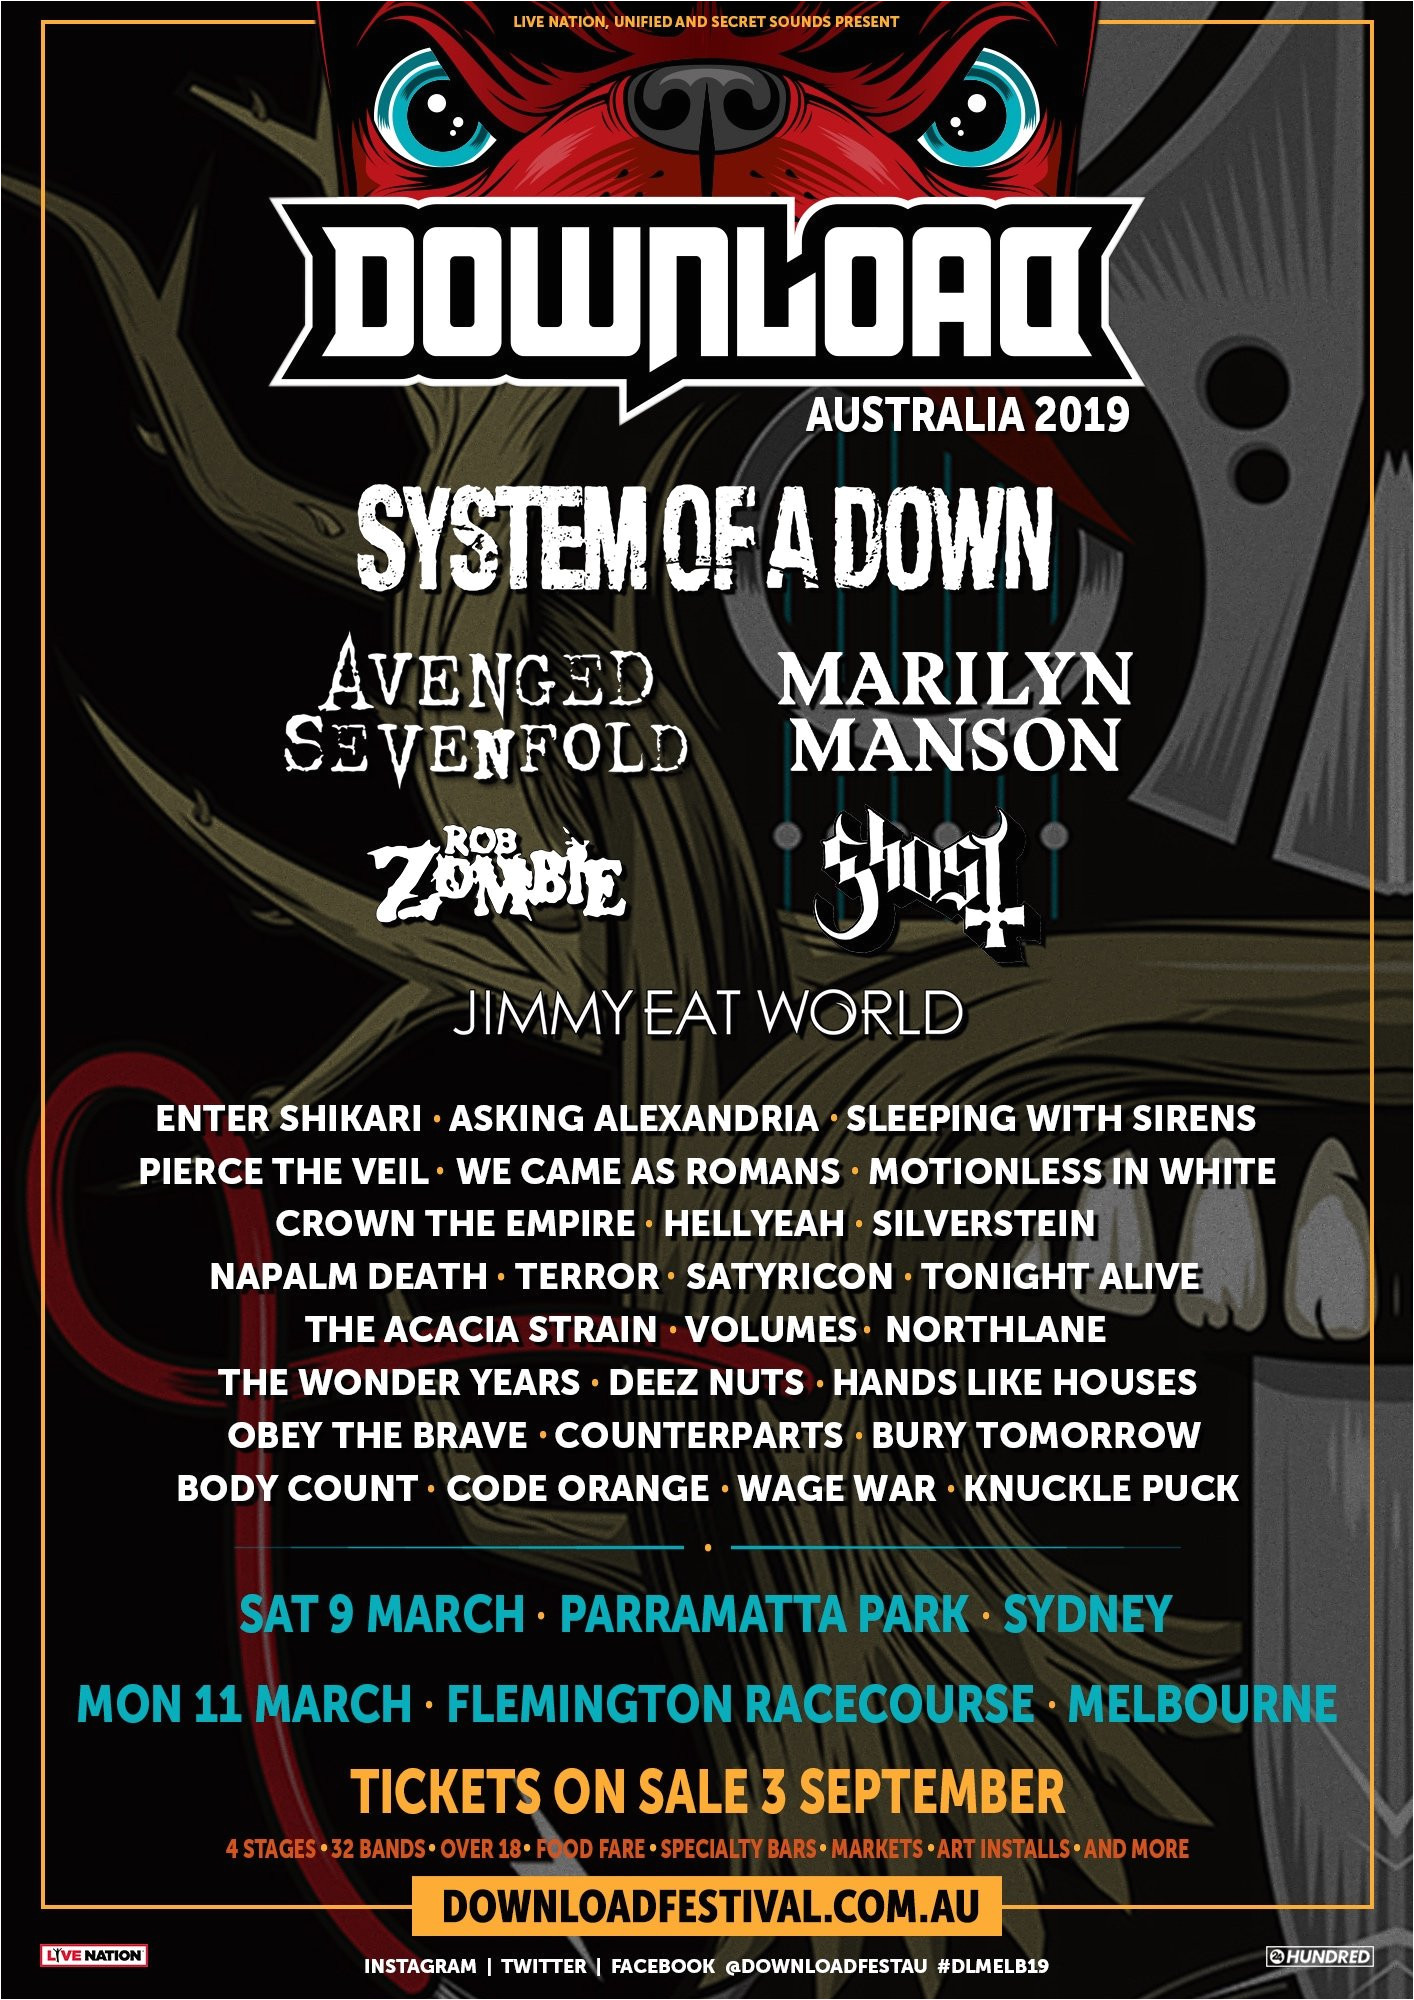 Mesa Arts and Crafts Festival 2019 Yep that Download Festival Australia 2019 Lineup Poster is Fake